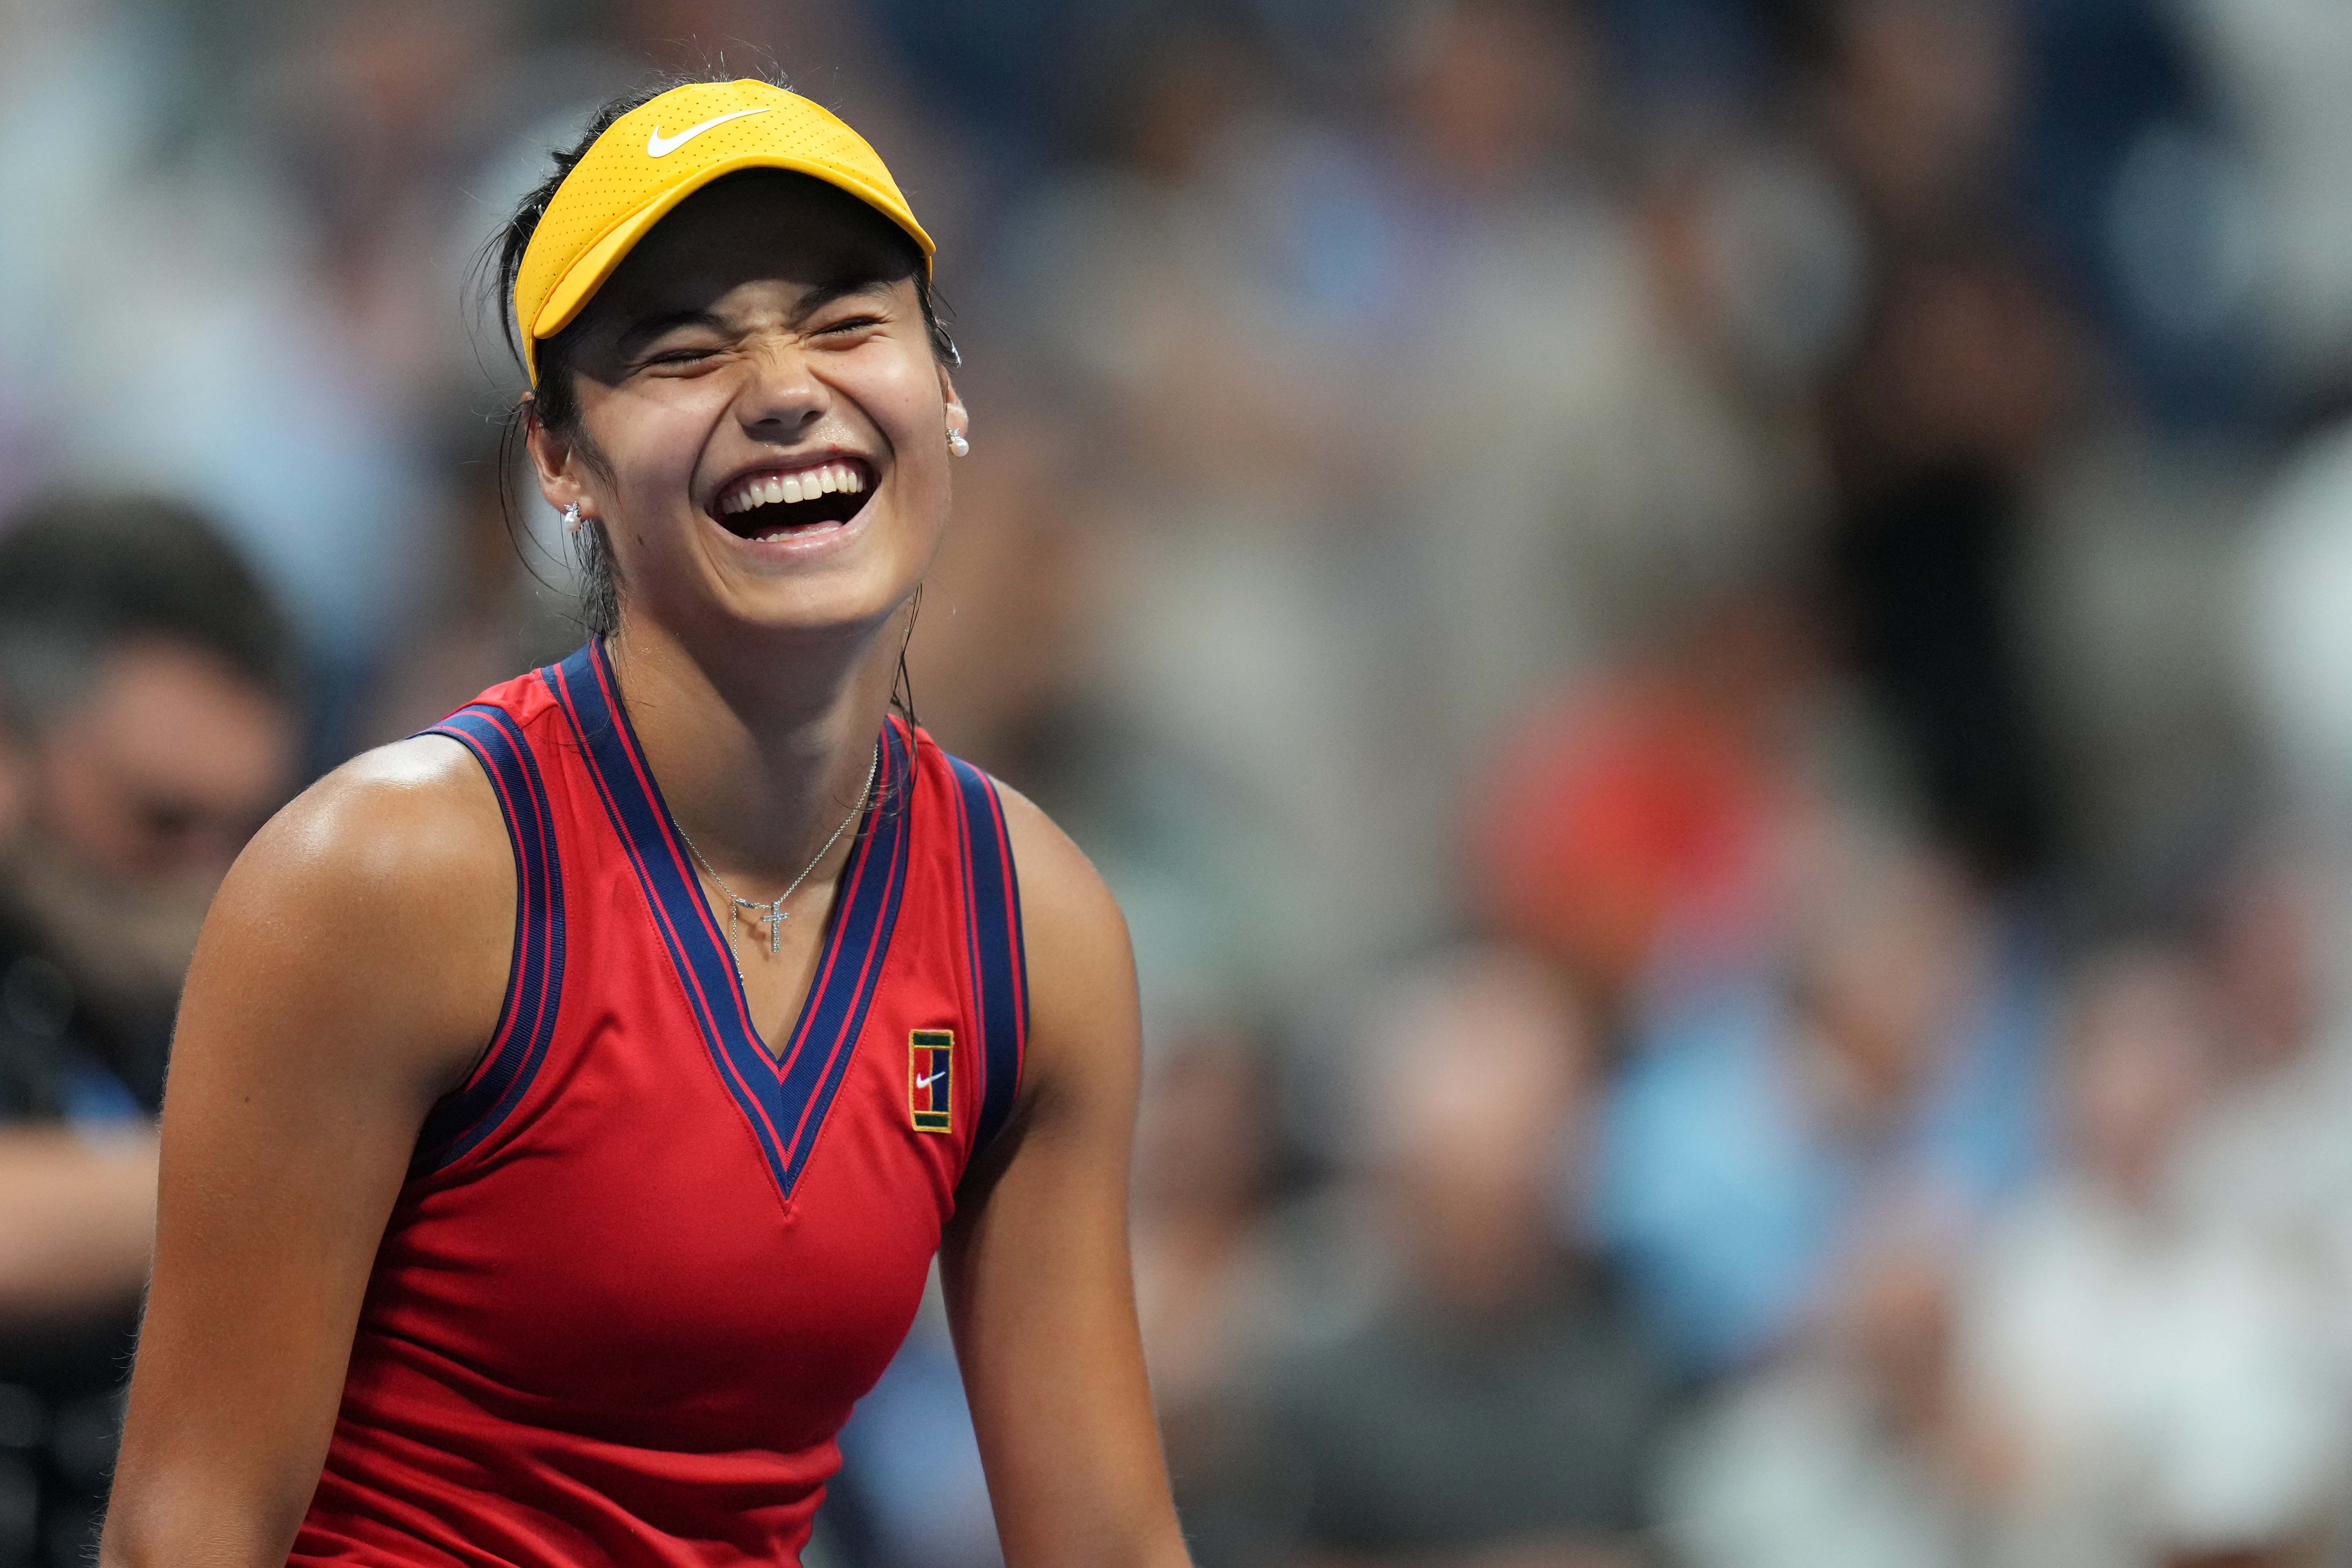 Emma Raducanu of Great Britain celebrates after her match against Maria Sakkari of Greece (not pictured) on day eleven of the 2021 U.S. Open tennis tournament at USTA Billie Jean King National Tennis Center.